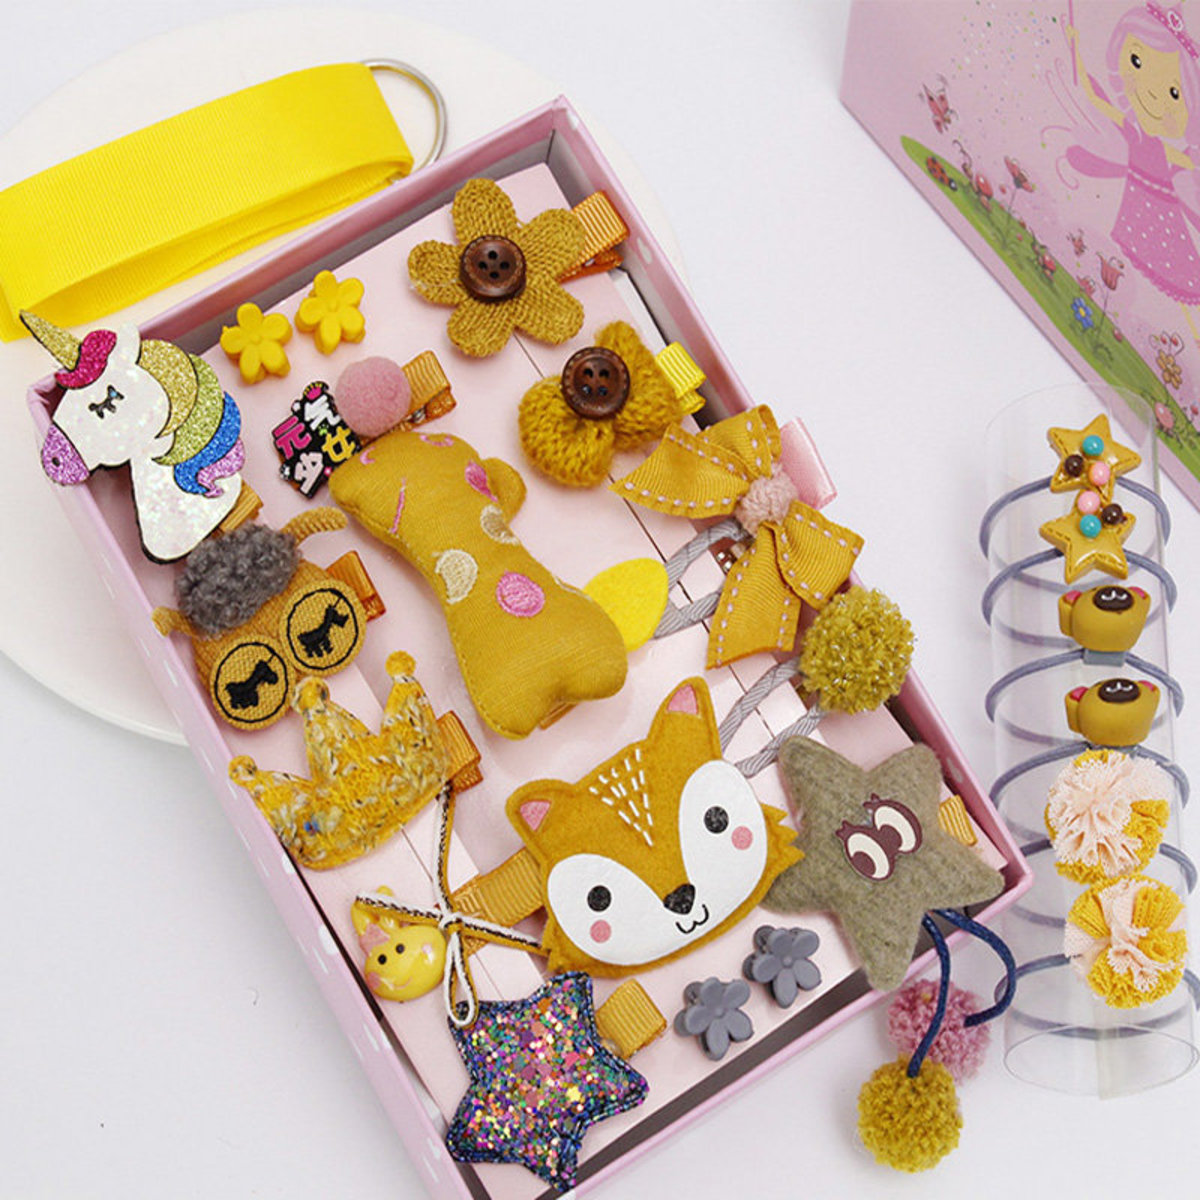 24 pieces Princess Style Hair Accessories Gift Set - Yellow Fox